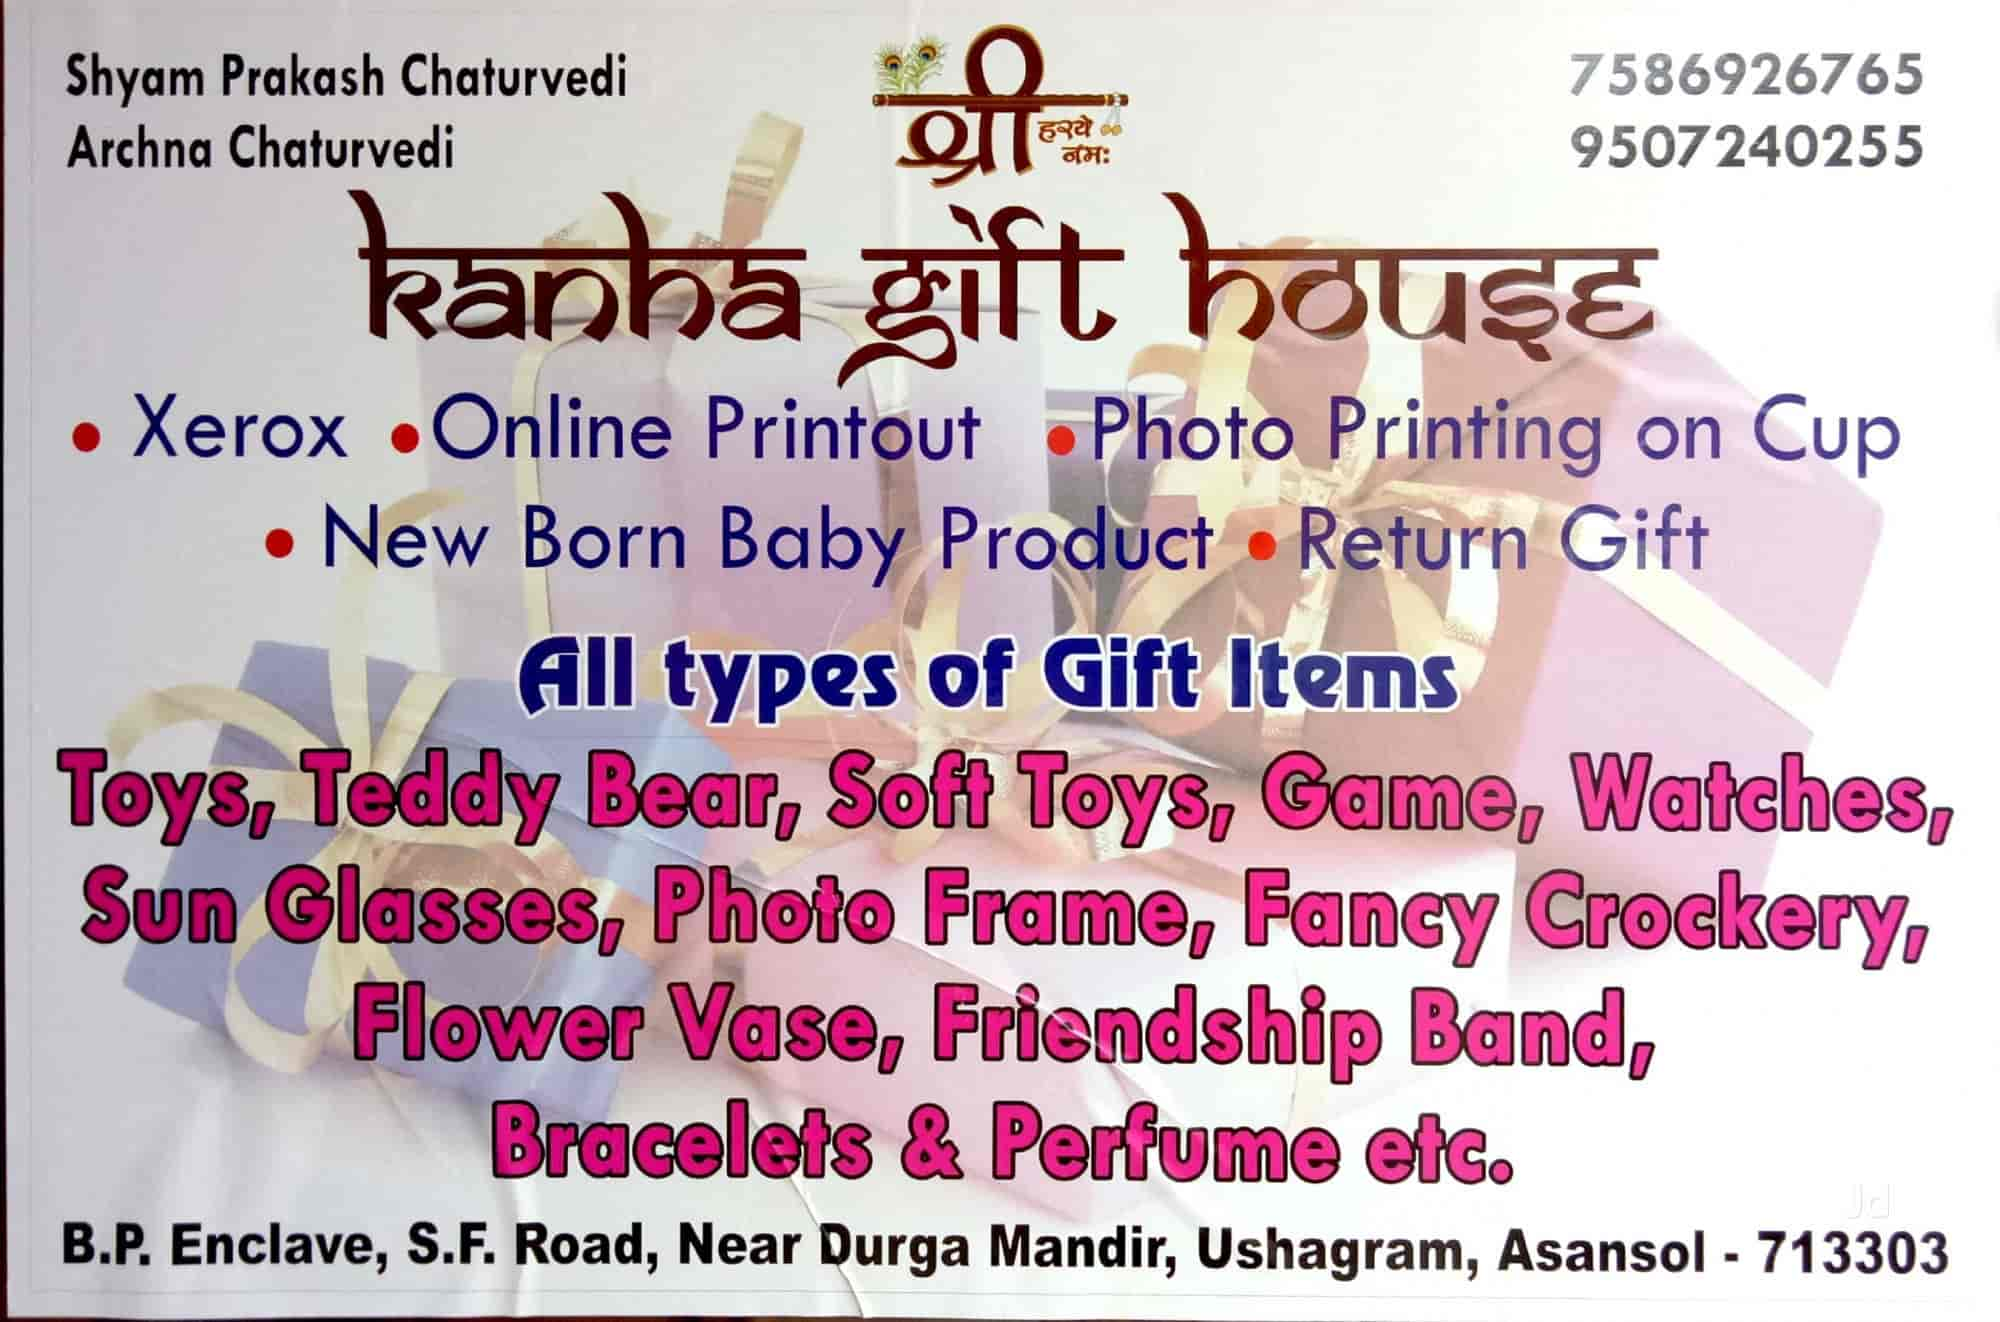 Kanha Gift House, Ushagram - Stationery Shops in Asansol - Justdial